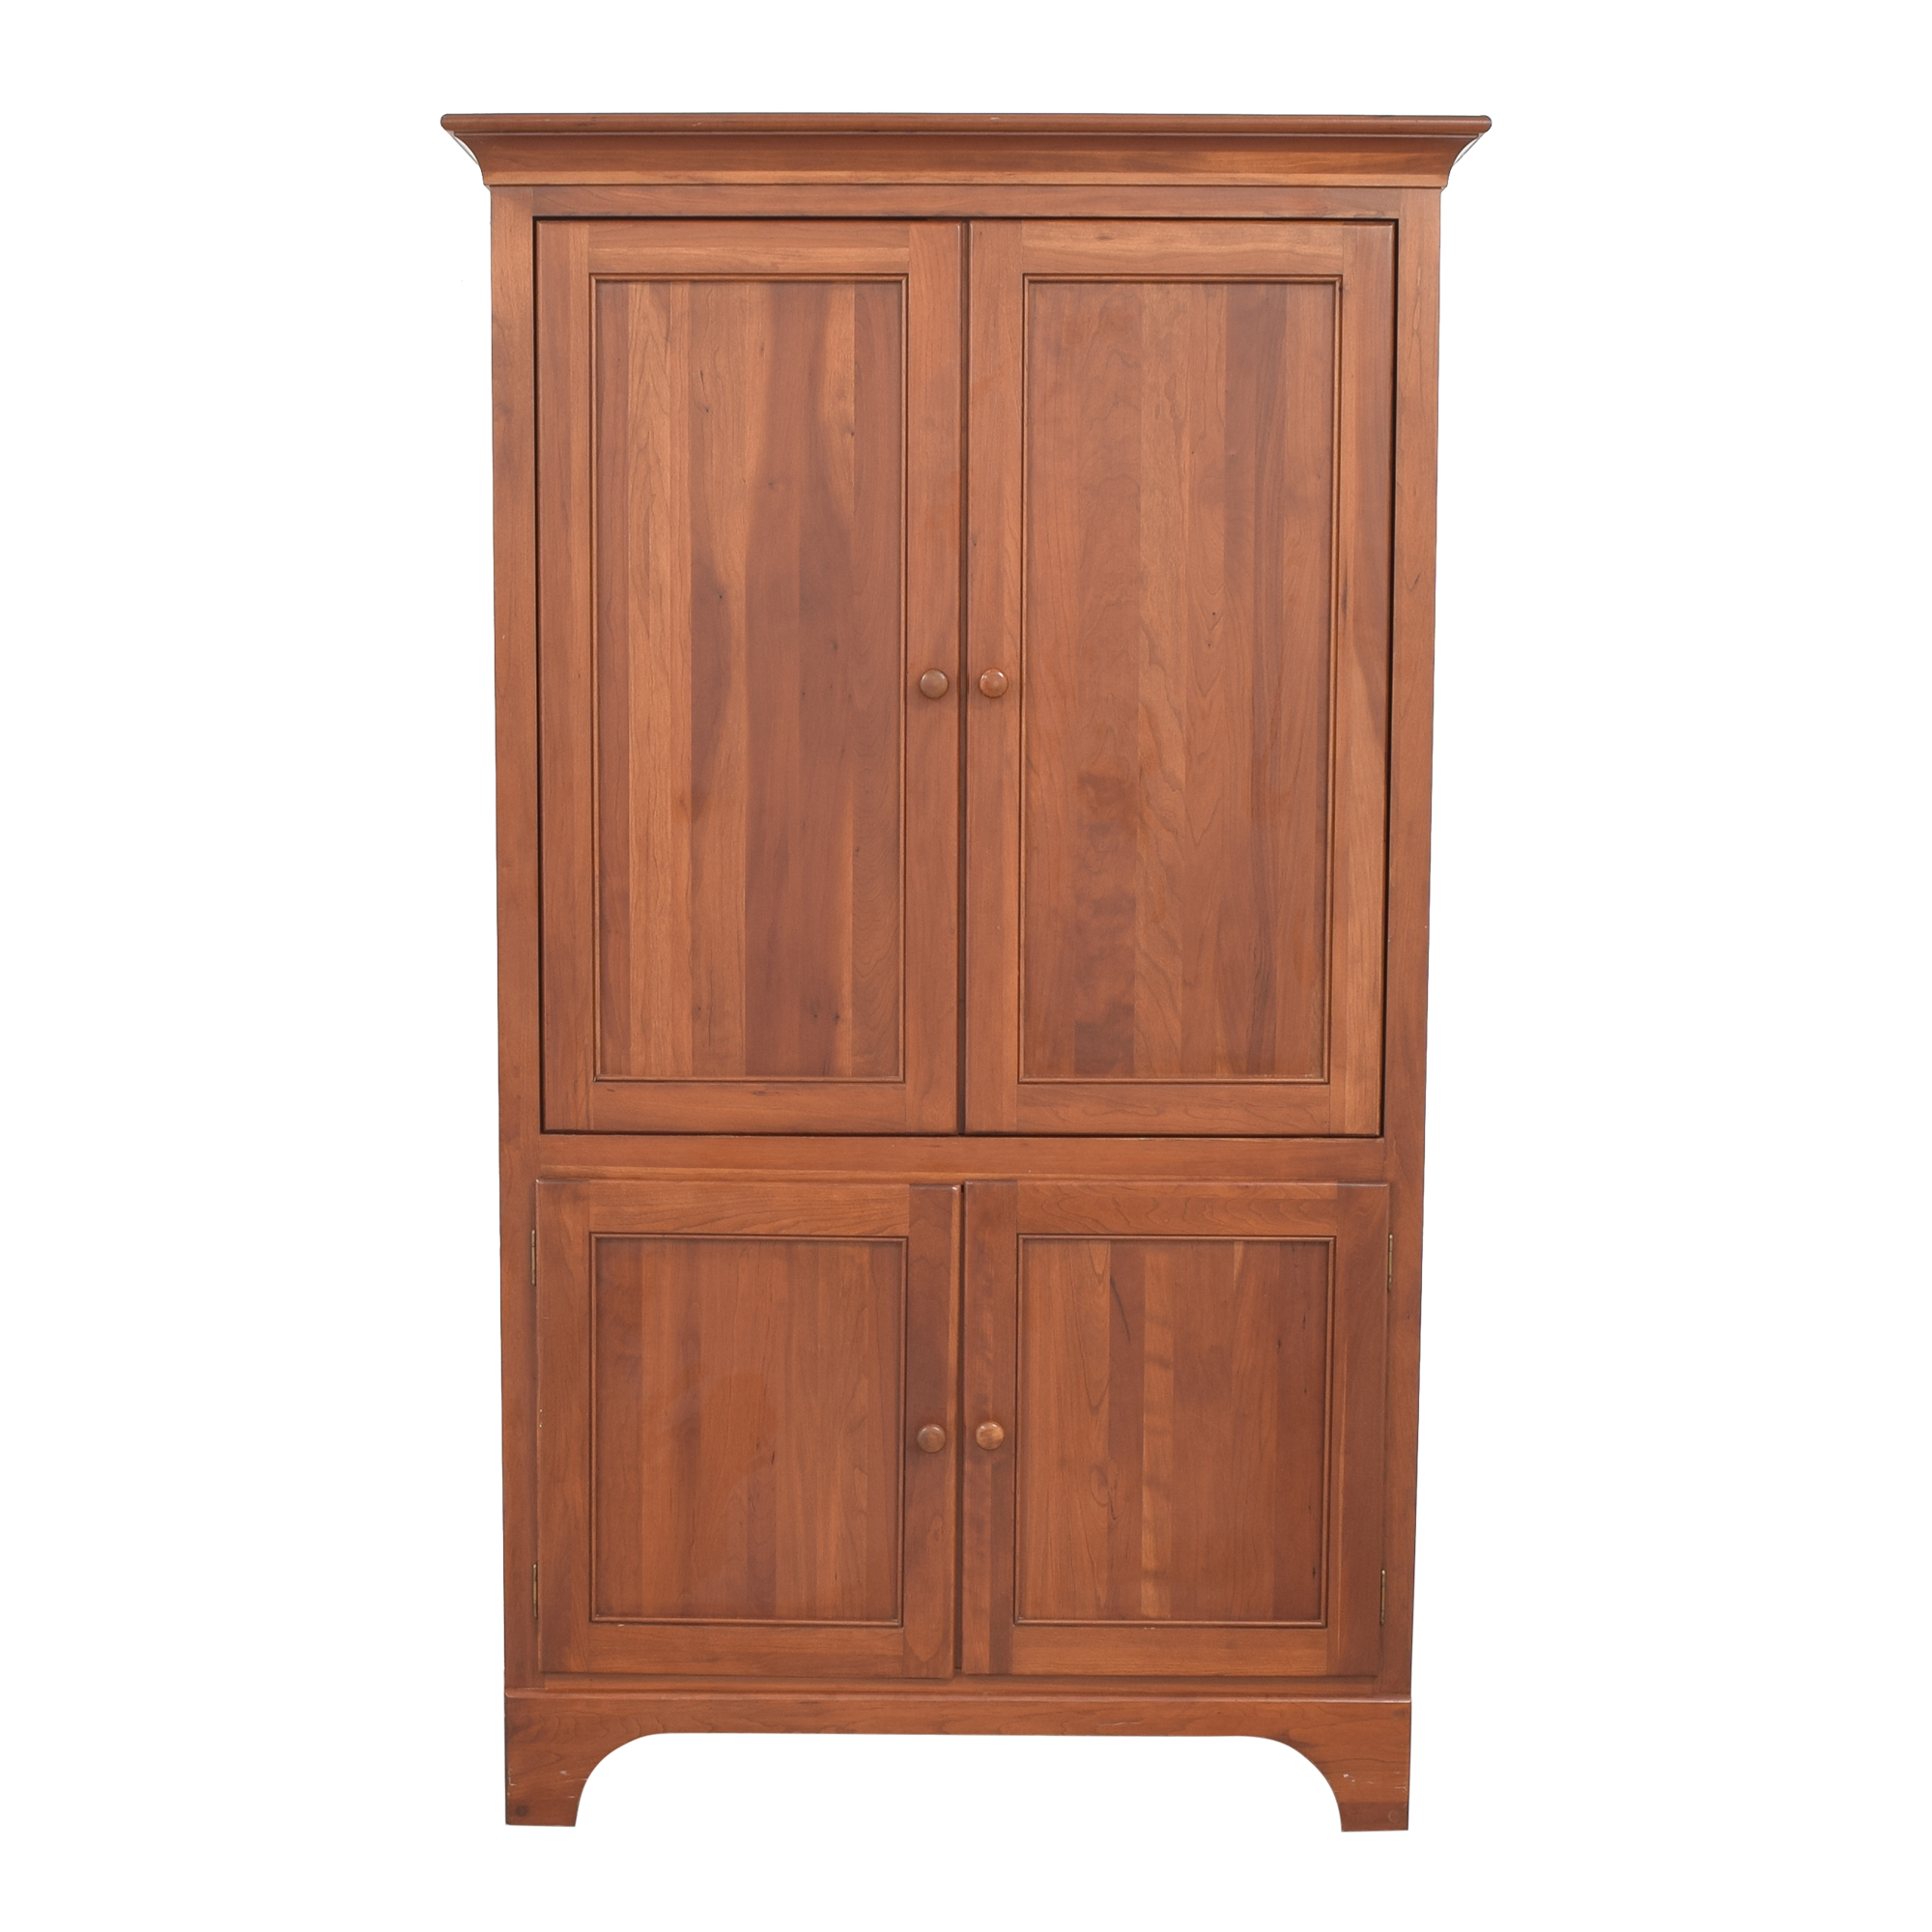 Ethan Allen Ethan Allen Media Armoire brown